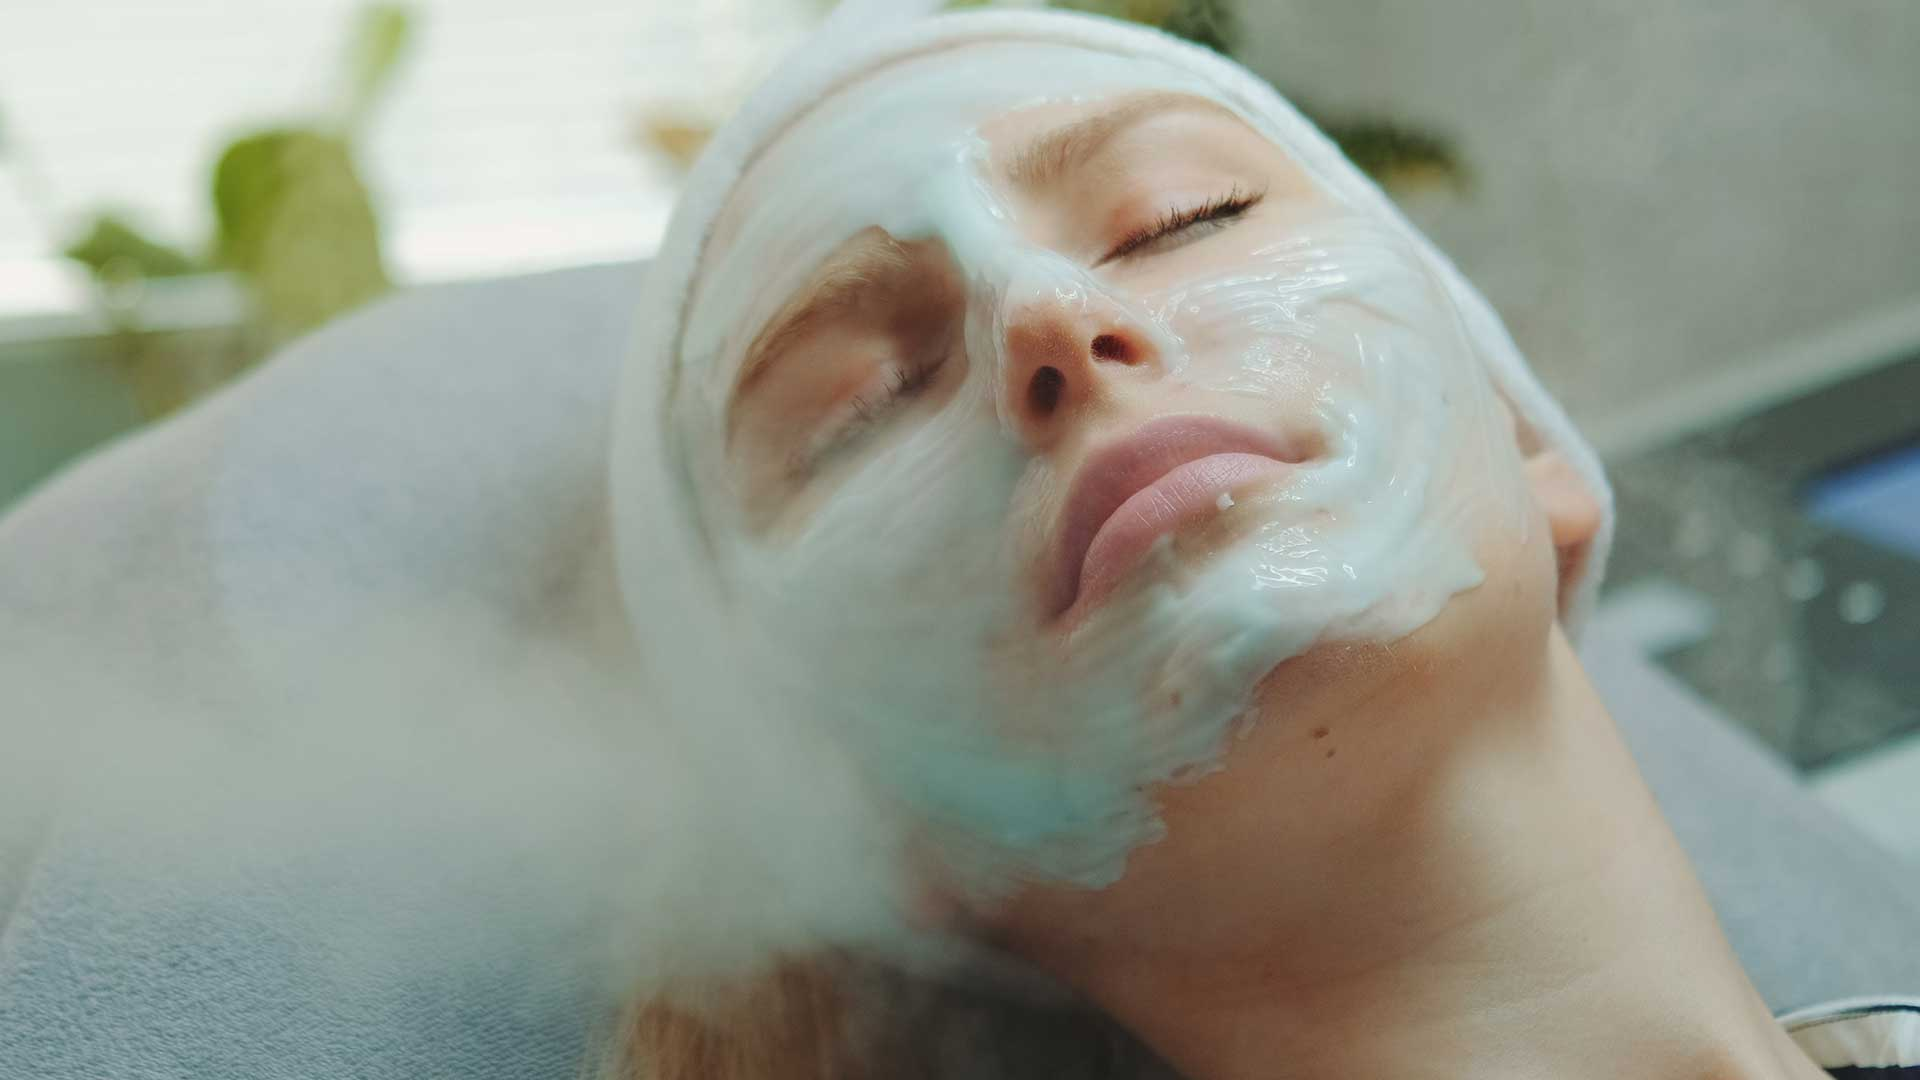 The ultimate buying guide to the facial steamer for glowing skin